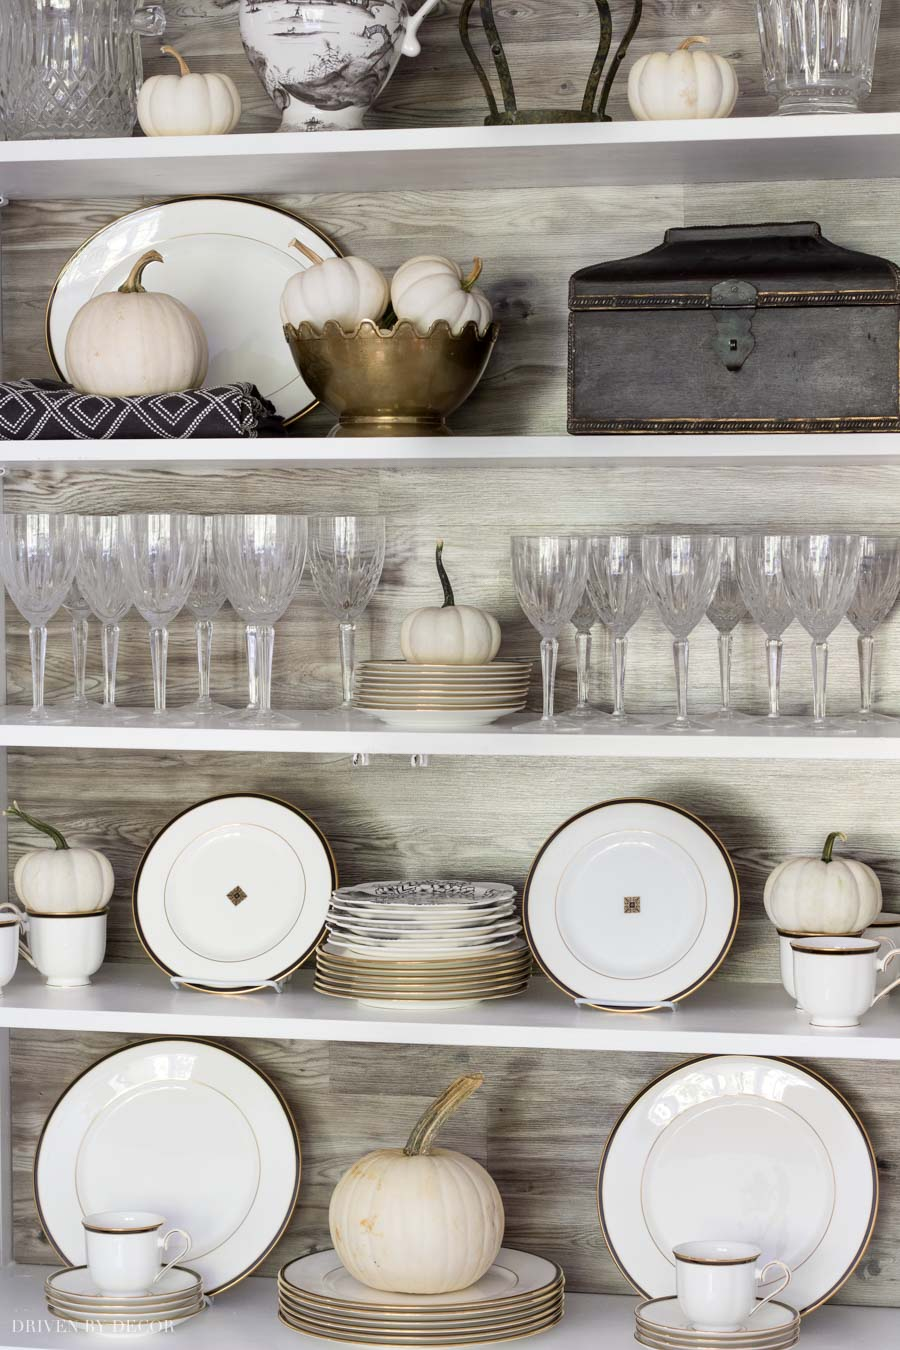 So cute! Baby boo pumpkins dress up this china cabinet for fall!